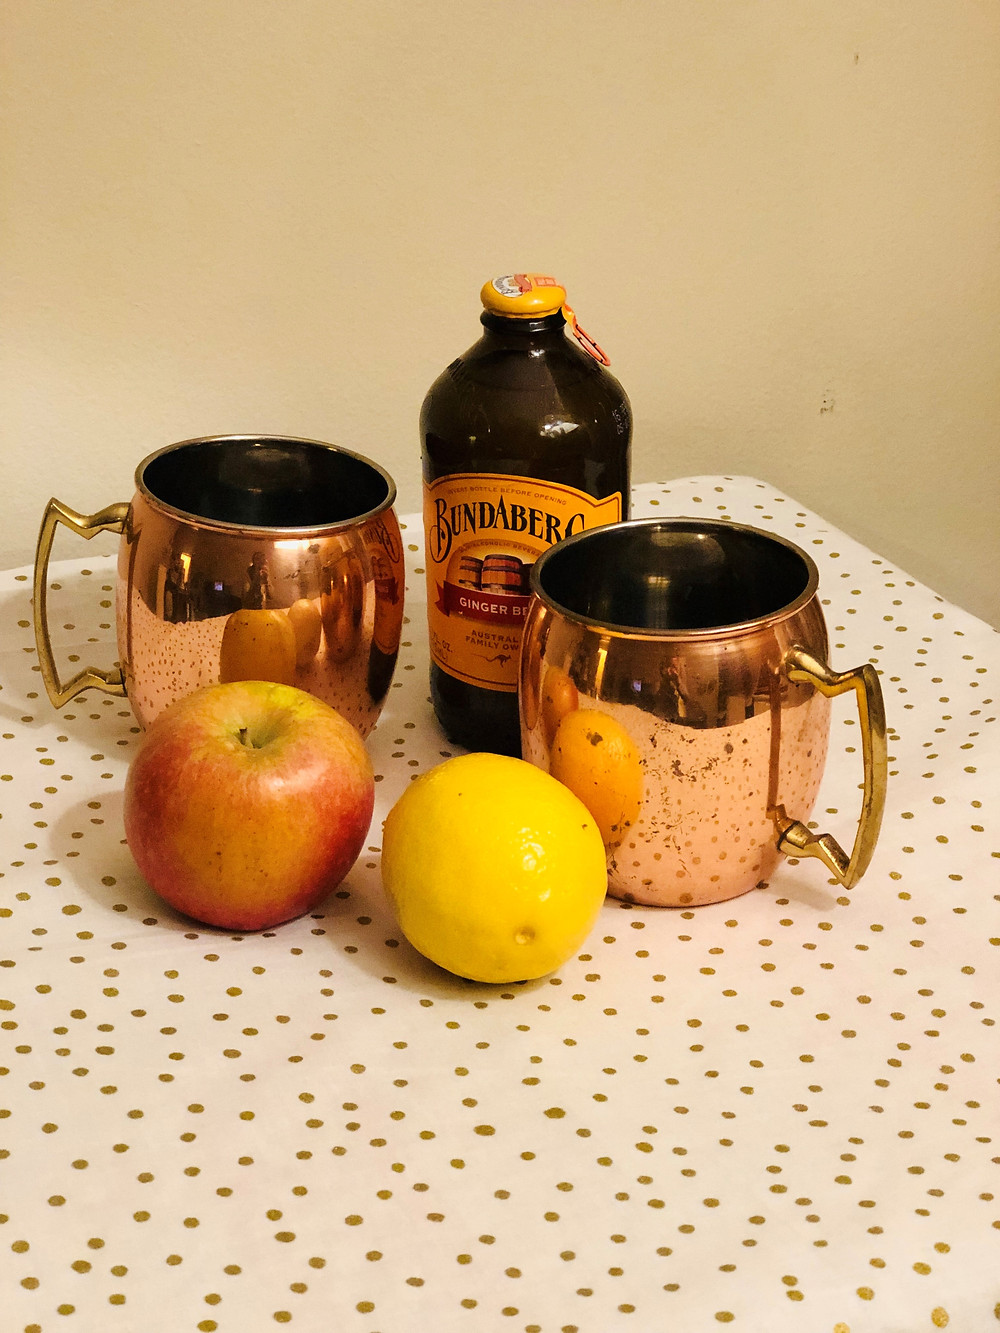 apple ginger mocktail, apple ginger Moscow mule, apples and lemons and Bundaberg ginger beer